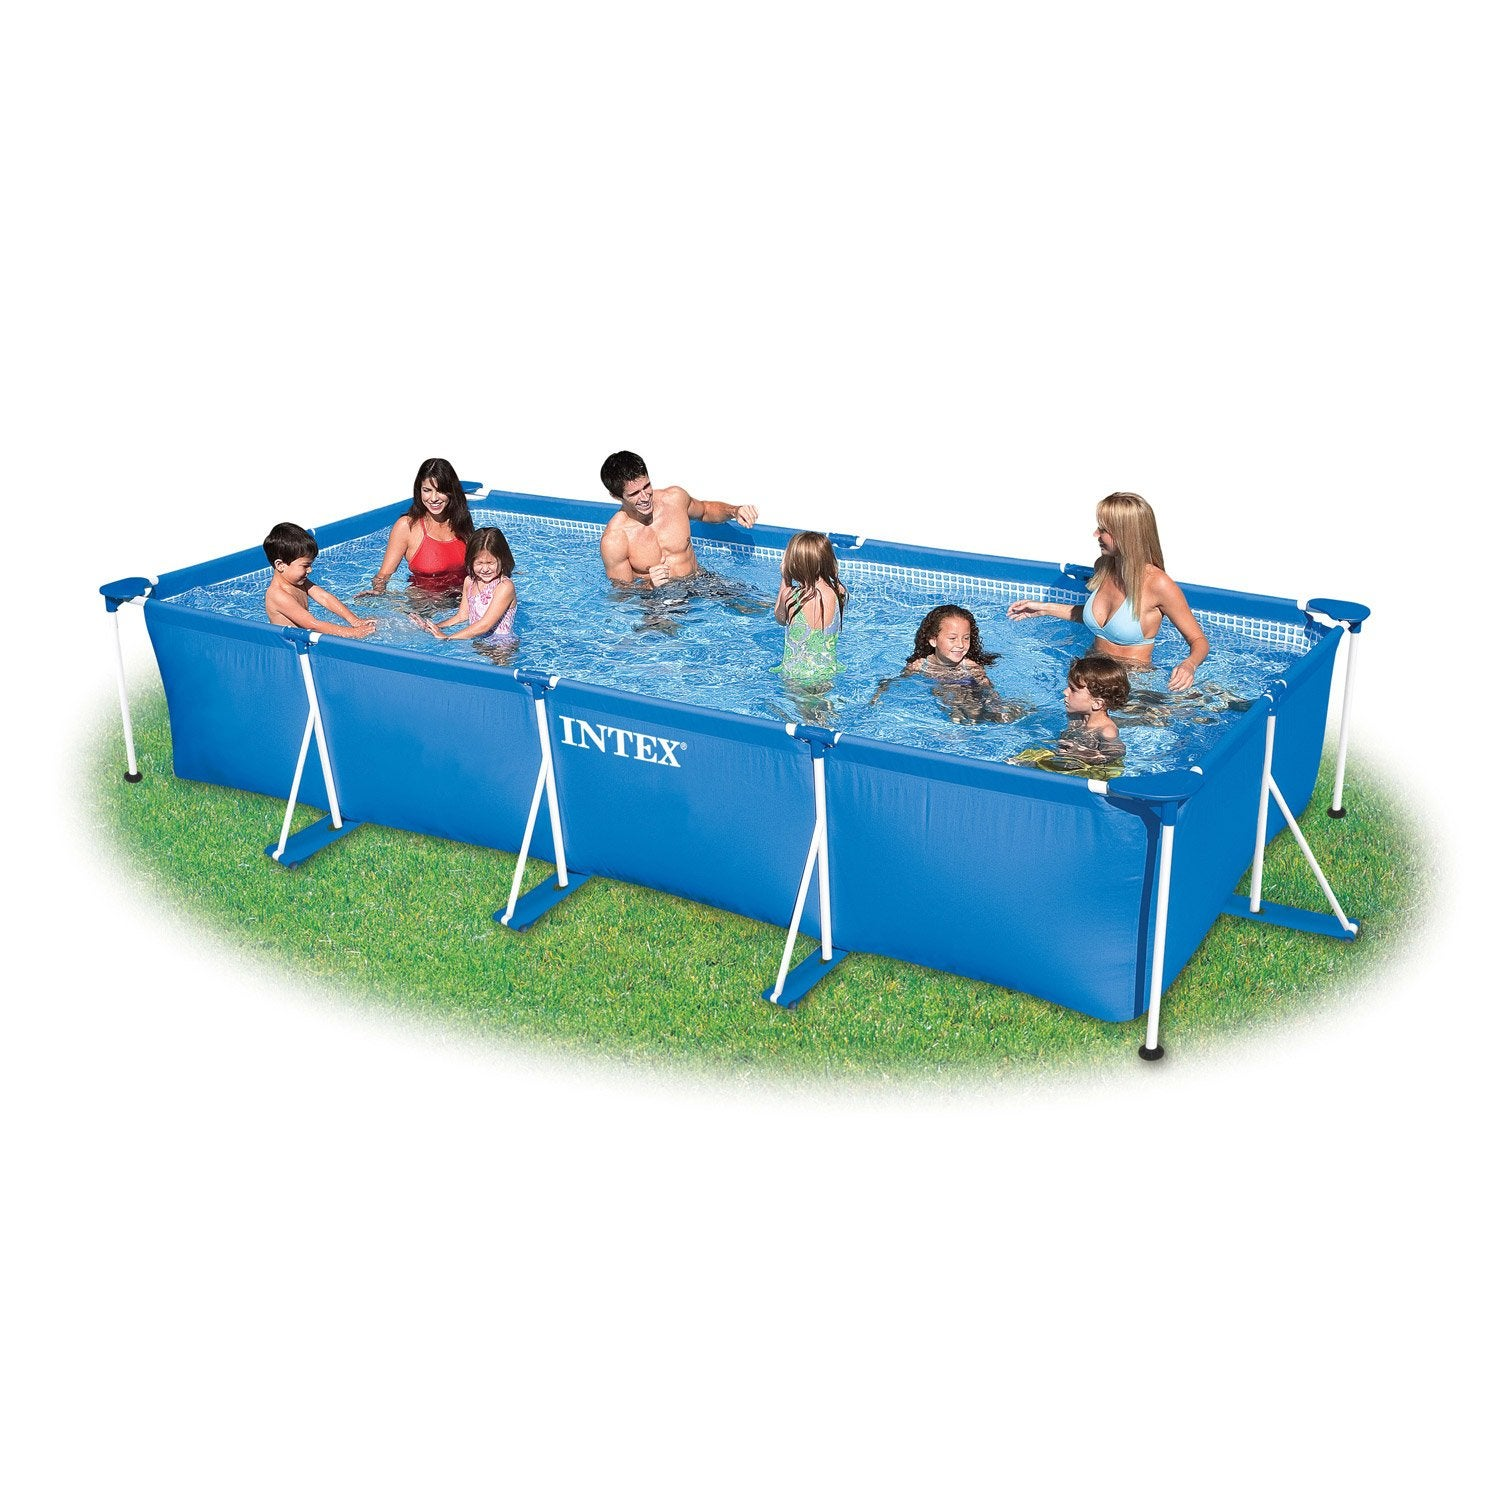 Piscine hors sol tubulaire frame junior intex - Piscine hors sol intex castorama ...